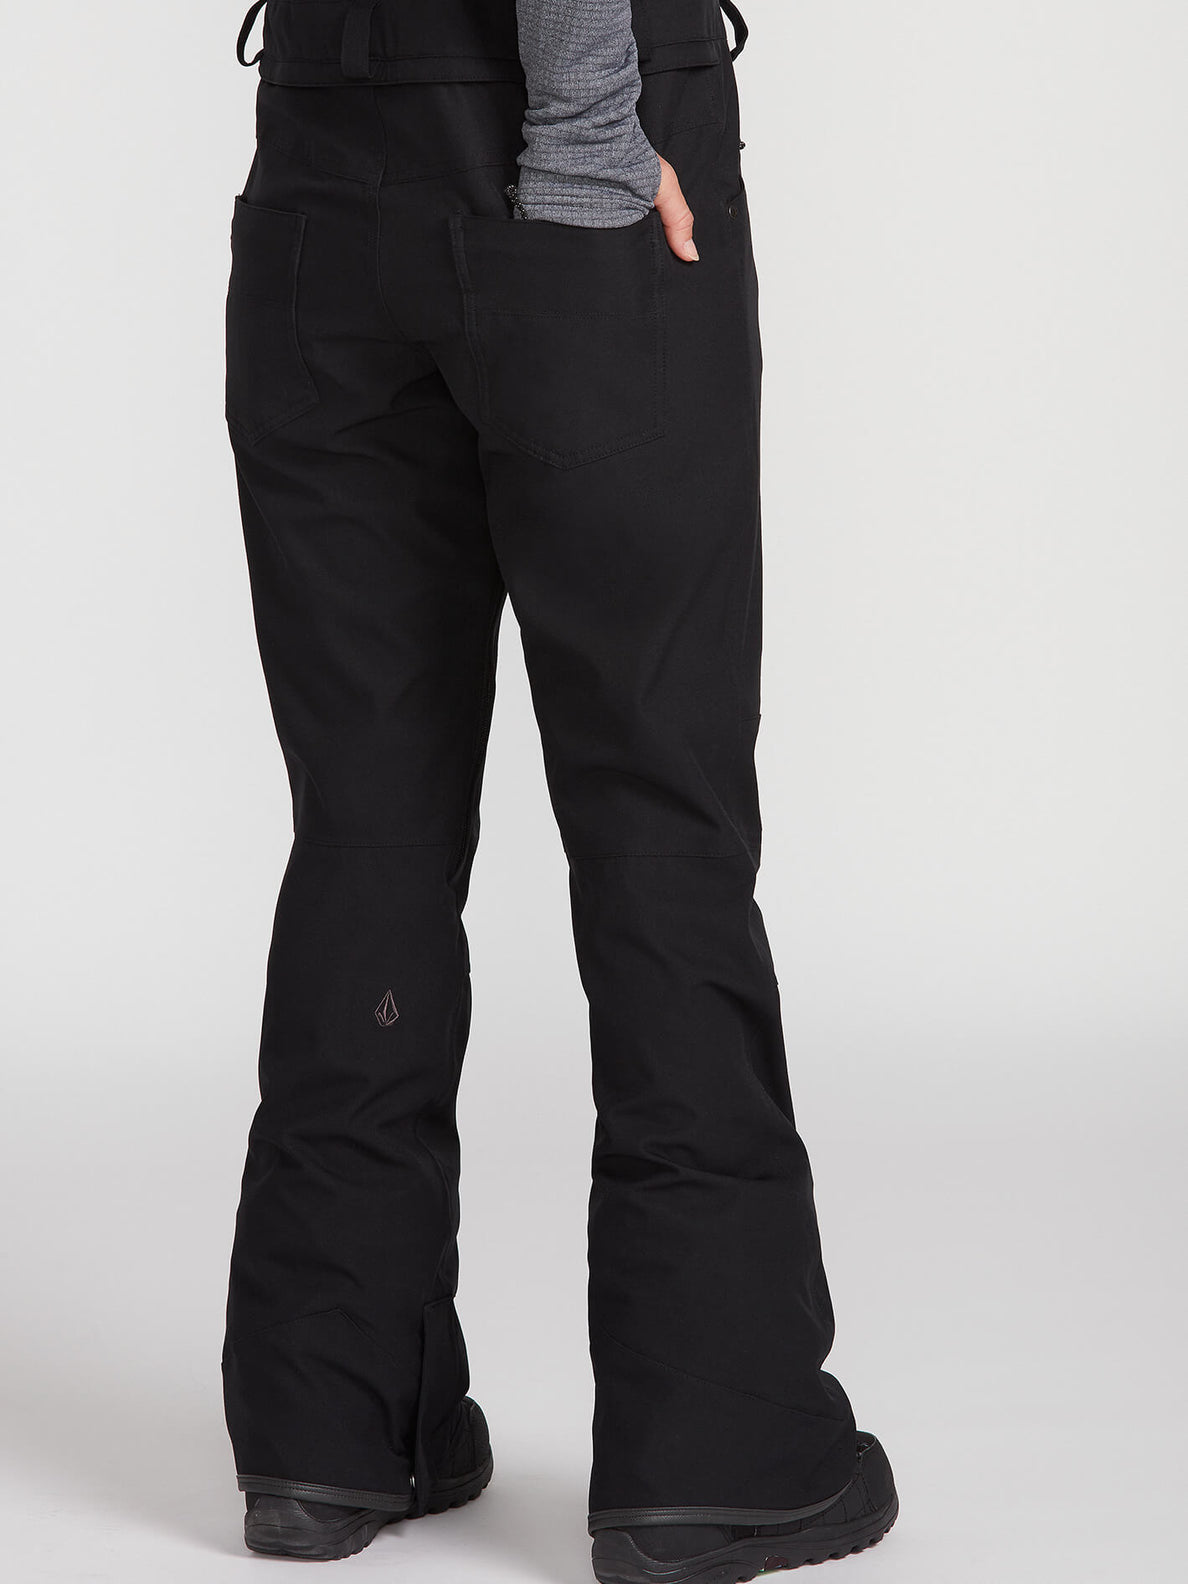 Swift Bib Overall Black (H1352003_BLK) [3]